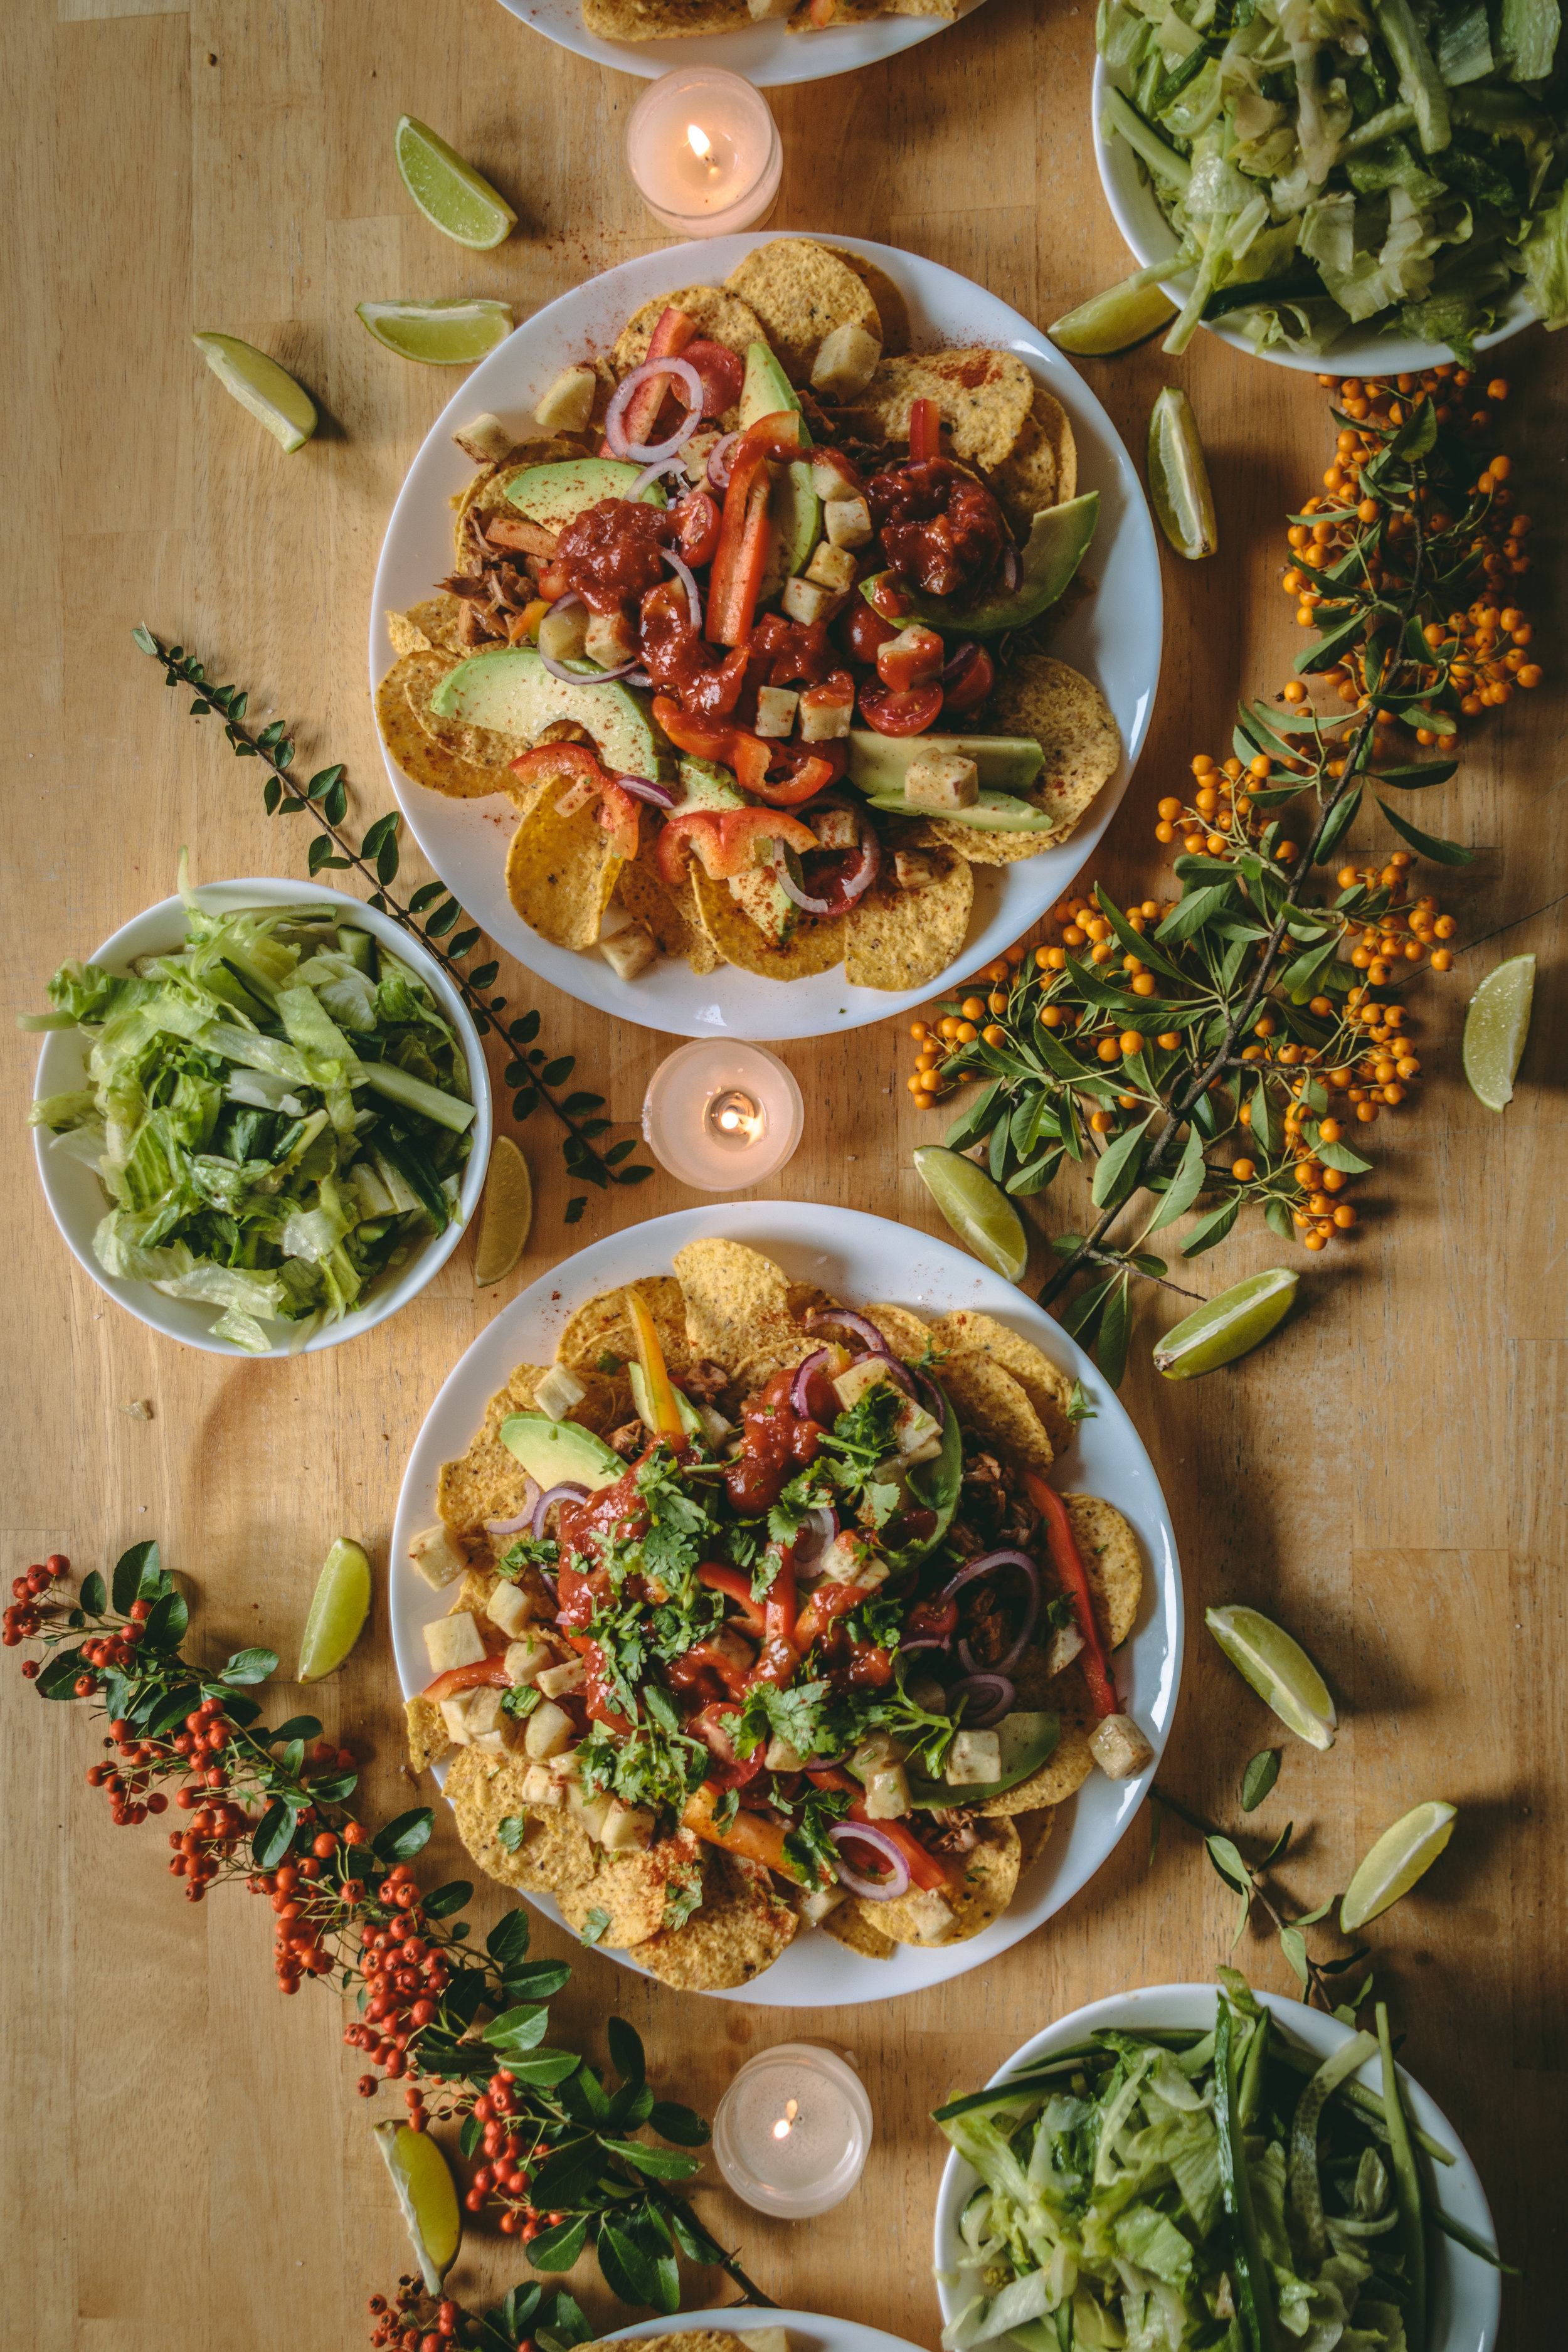 Vegan Nachos - Prepared by Lisa Forbes